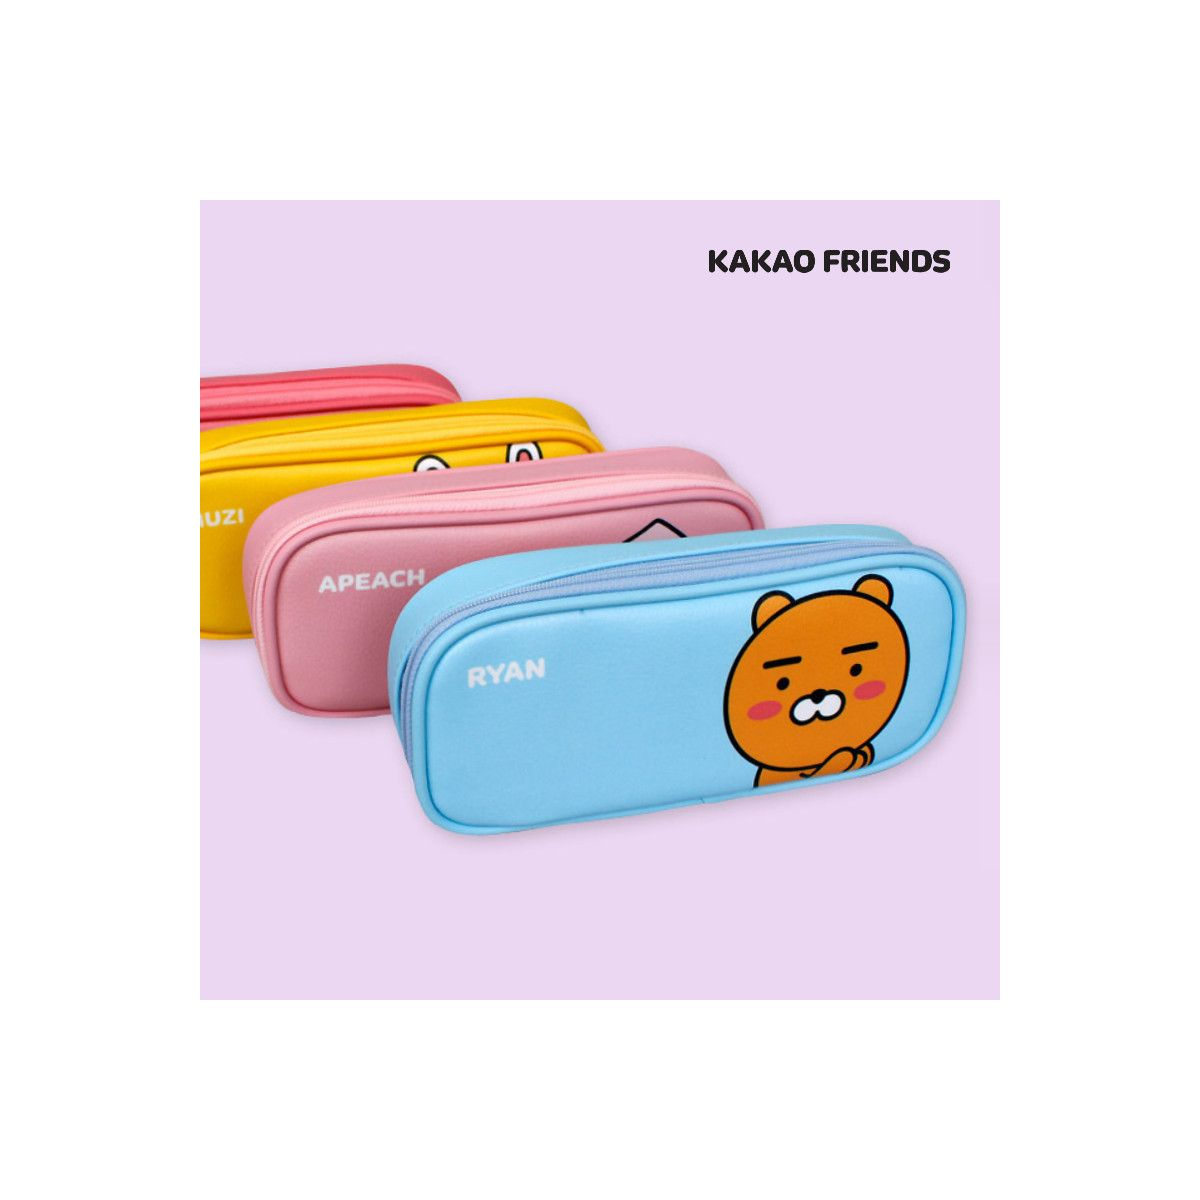 Kakao Friends / Pouch -RYAN/APEACH 1